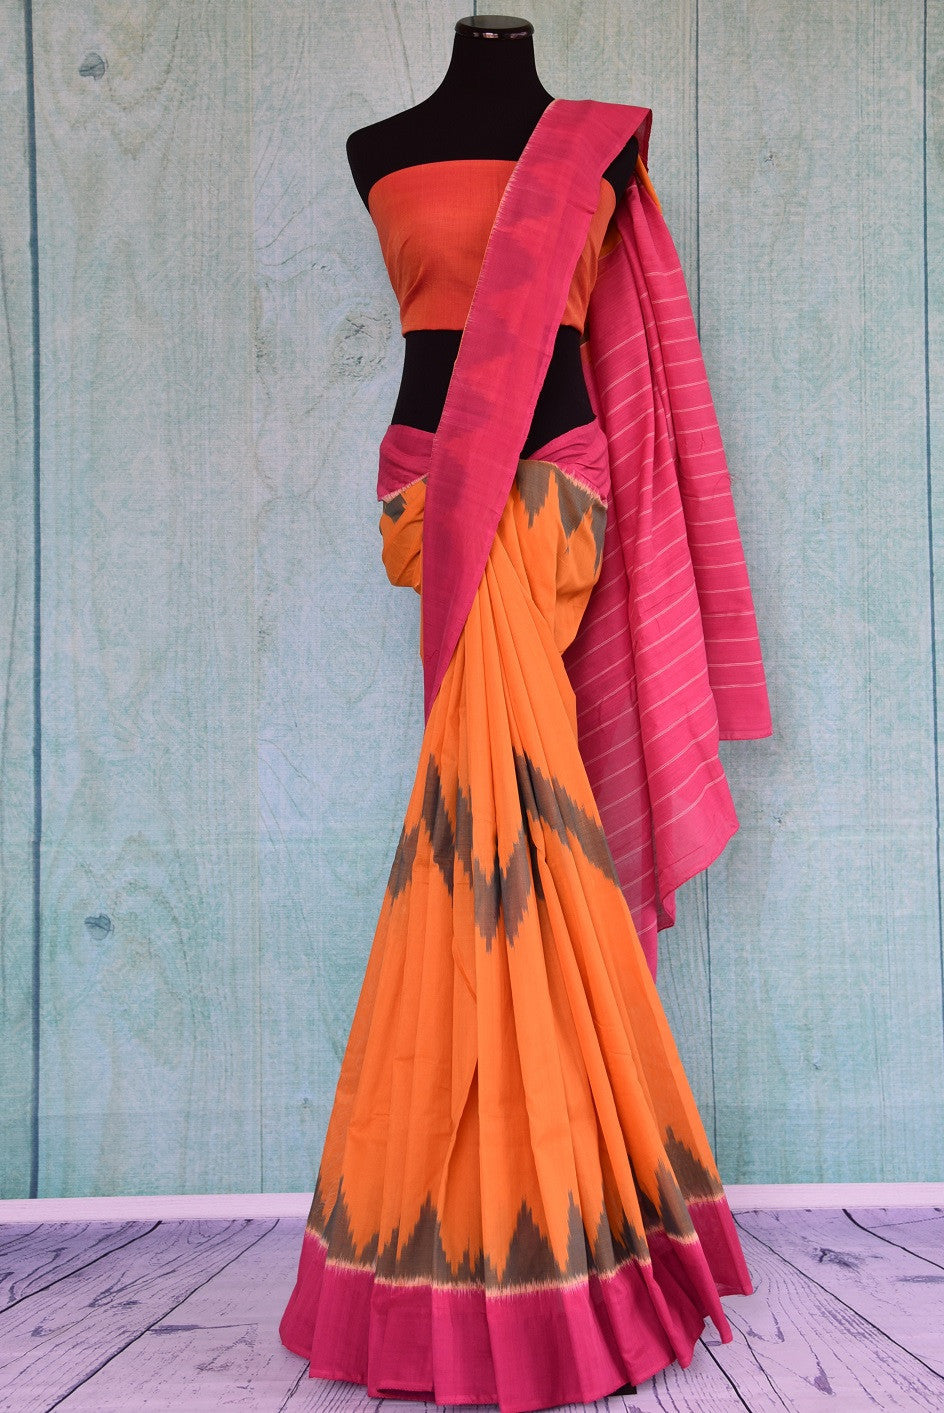 90D340 Traditional cotton ikkat saree that works well for pujas and festivals. The yellow and pink sari can be bought at our ethnic wear store online - Pure Elegance.